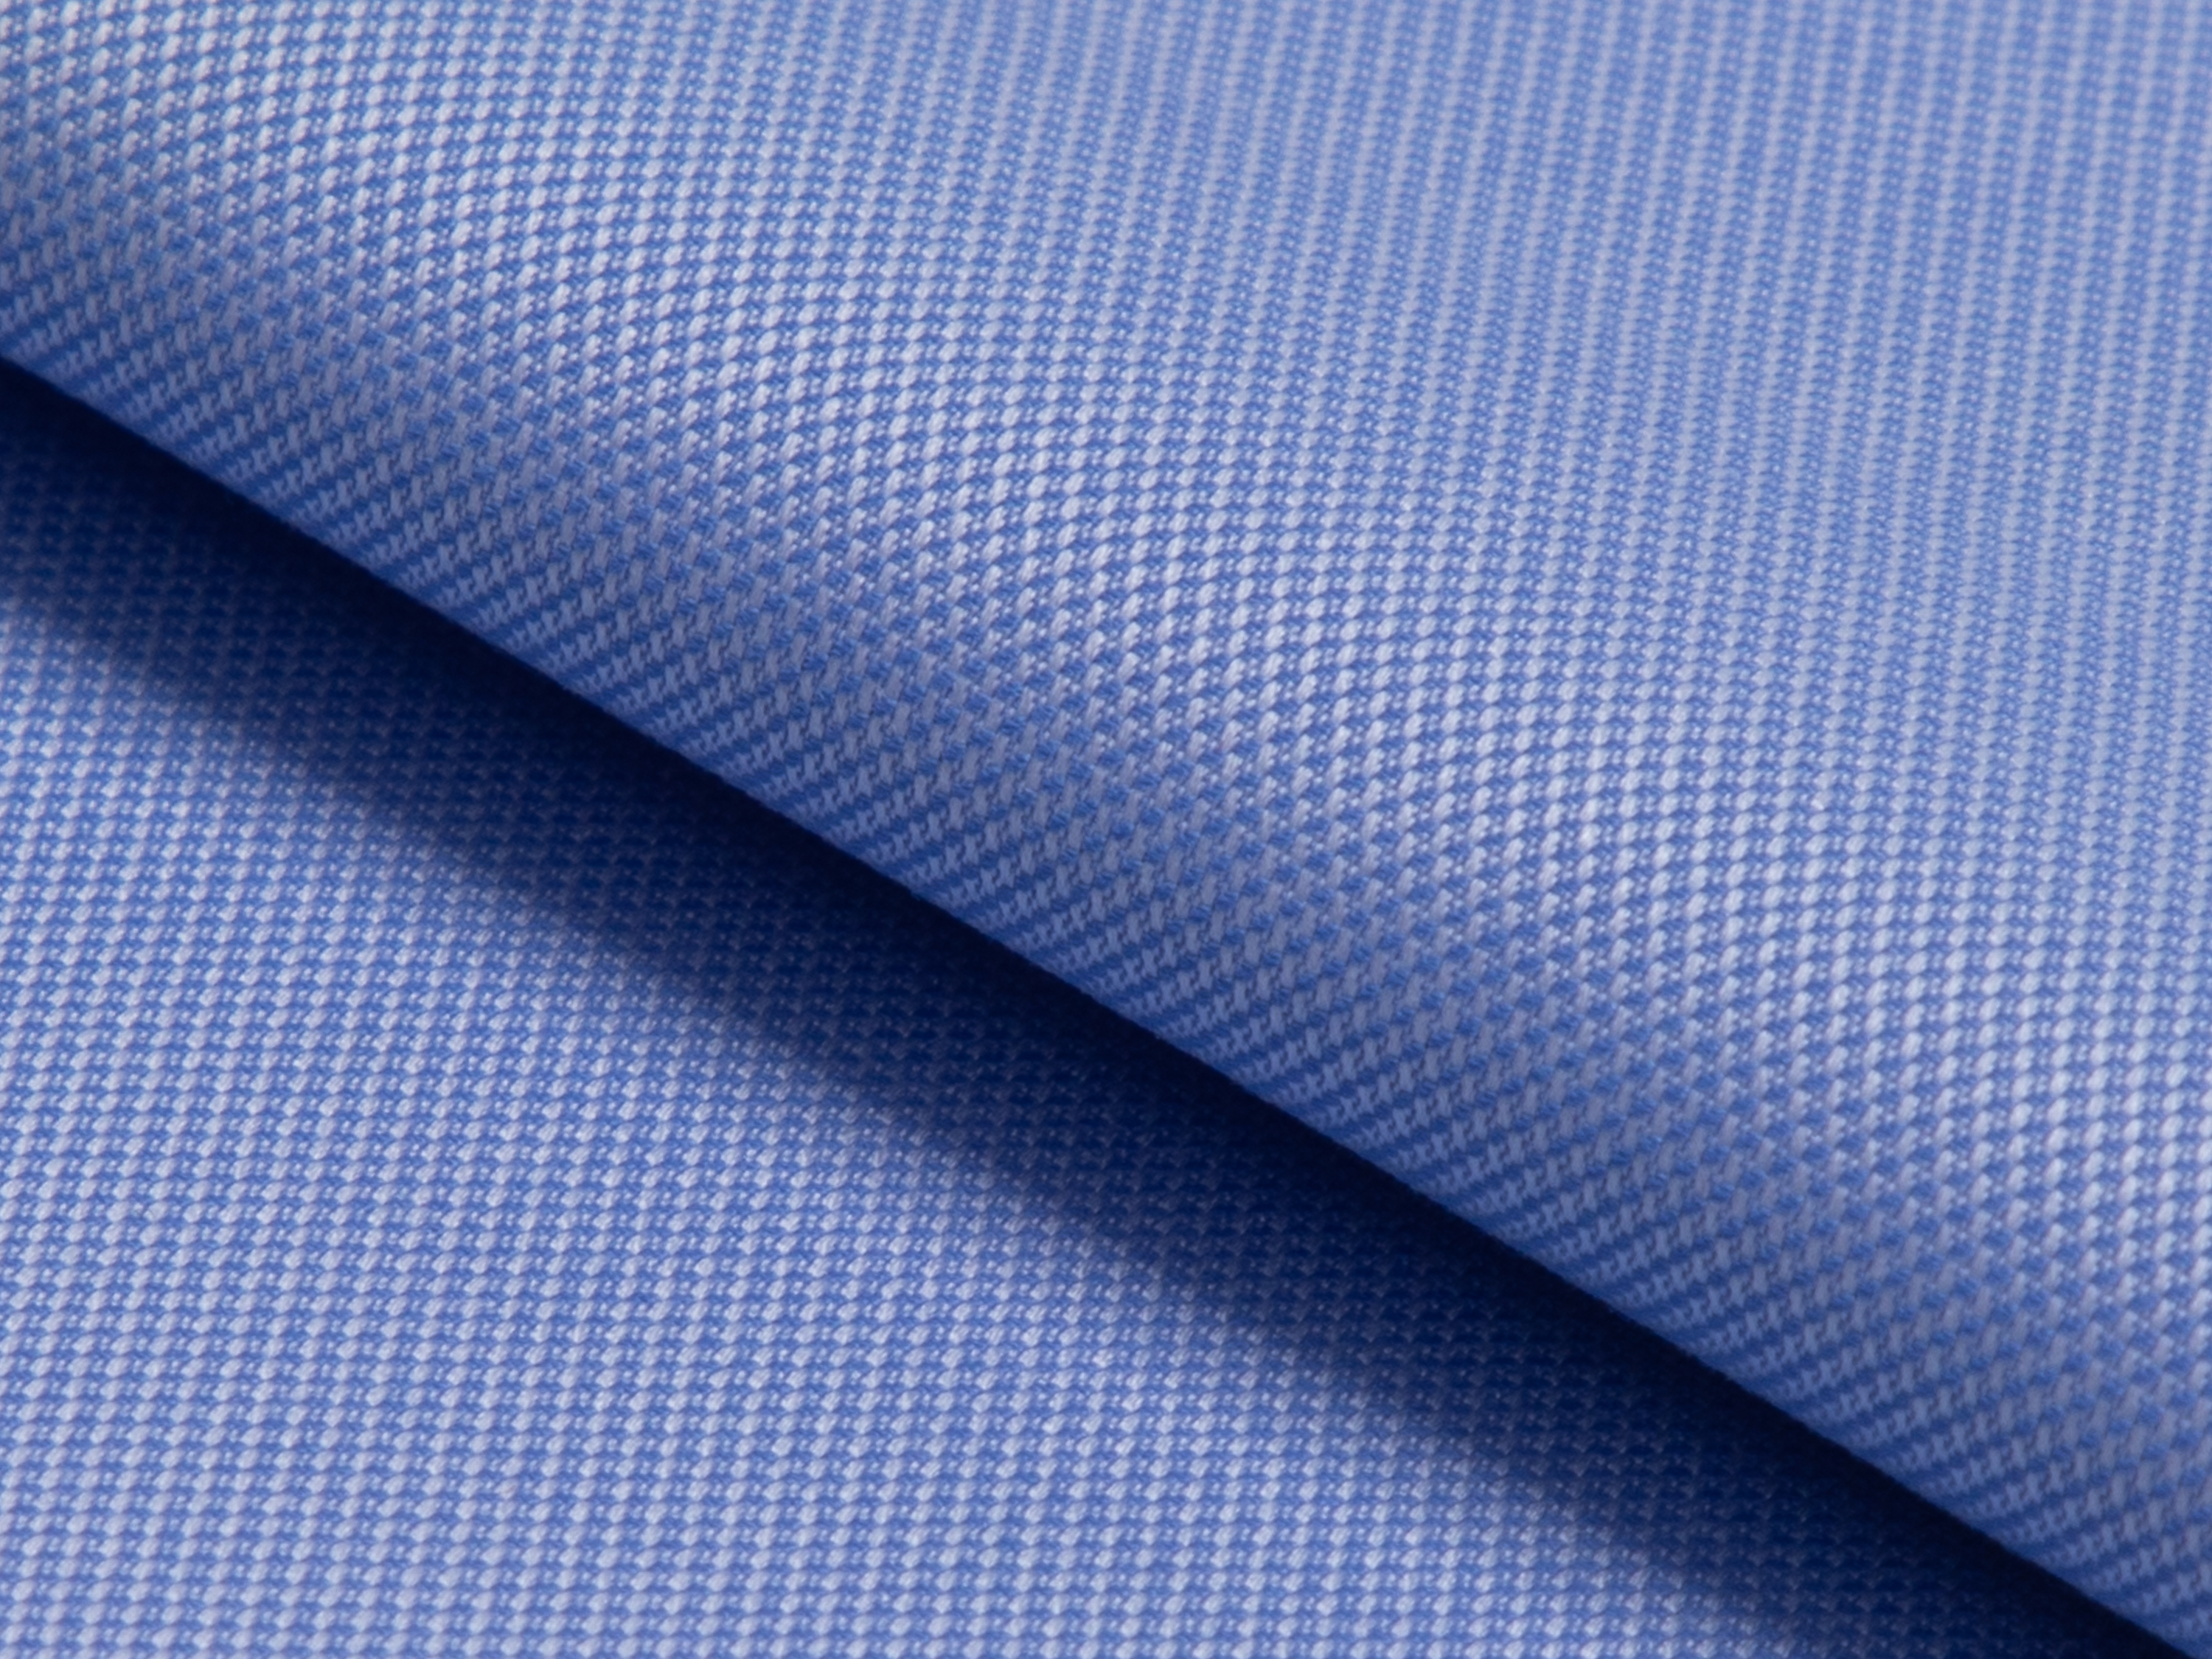 Buy tailor made shirts online - MAYFAIR (NEW) - Pinpoint Blue